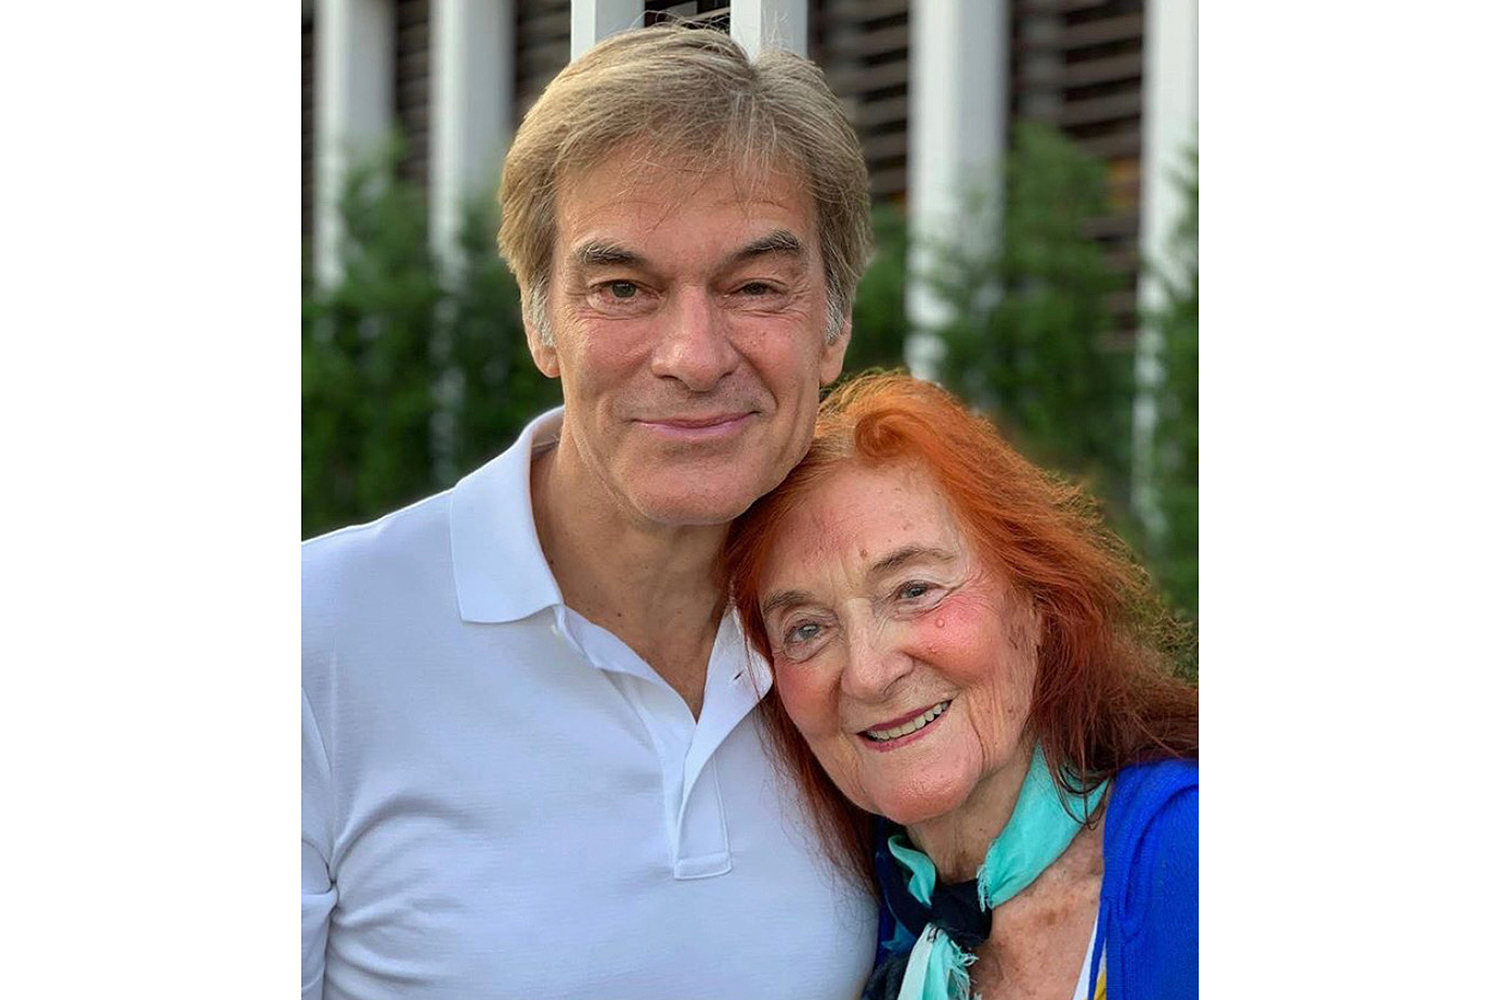 Dr. Oz and his mother, Suna